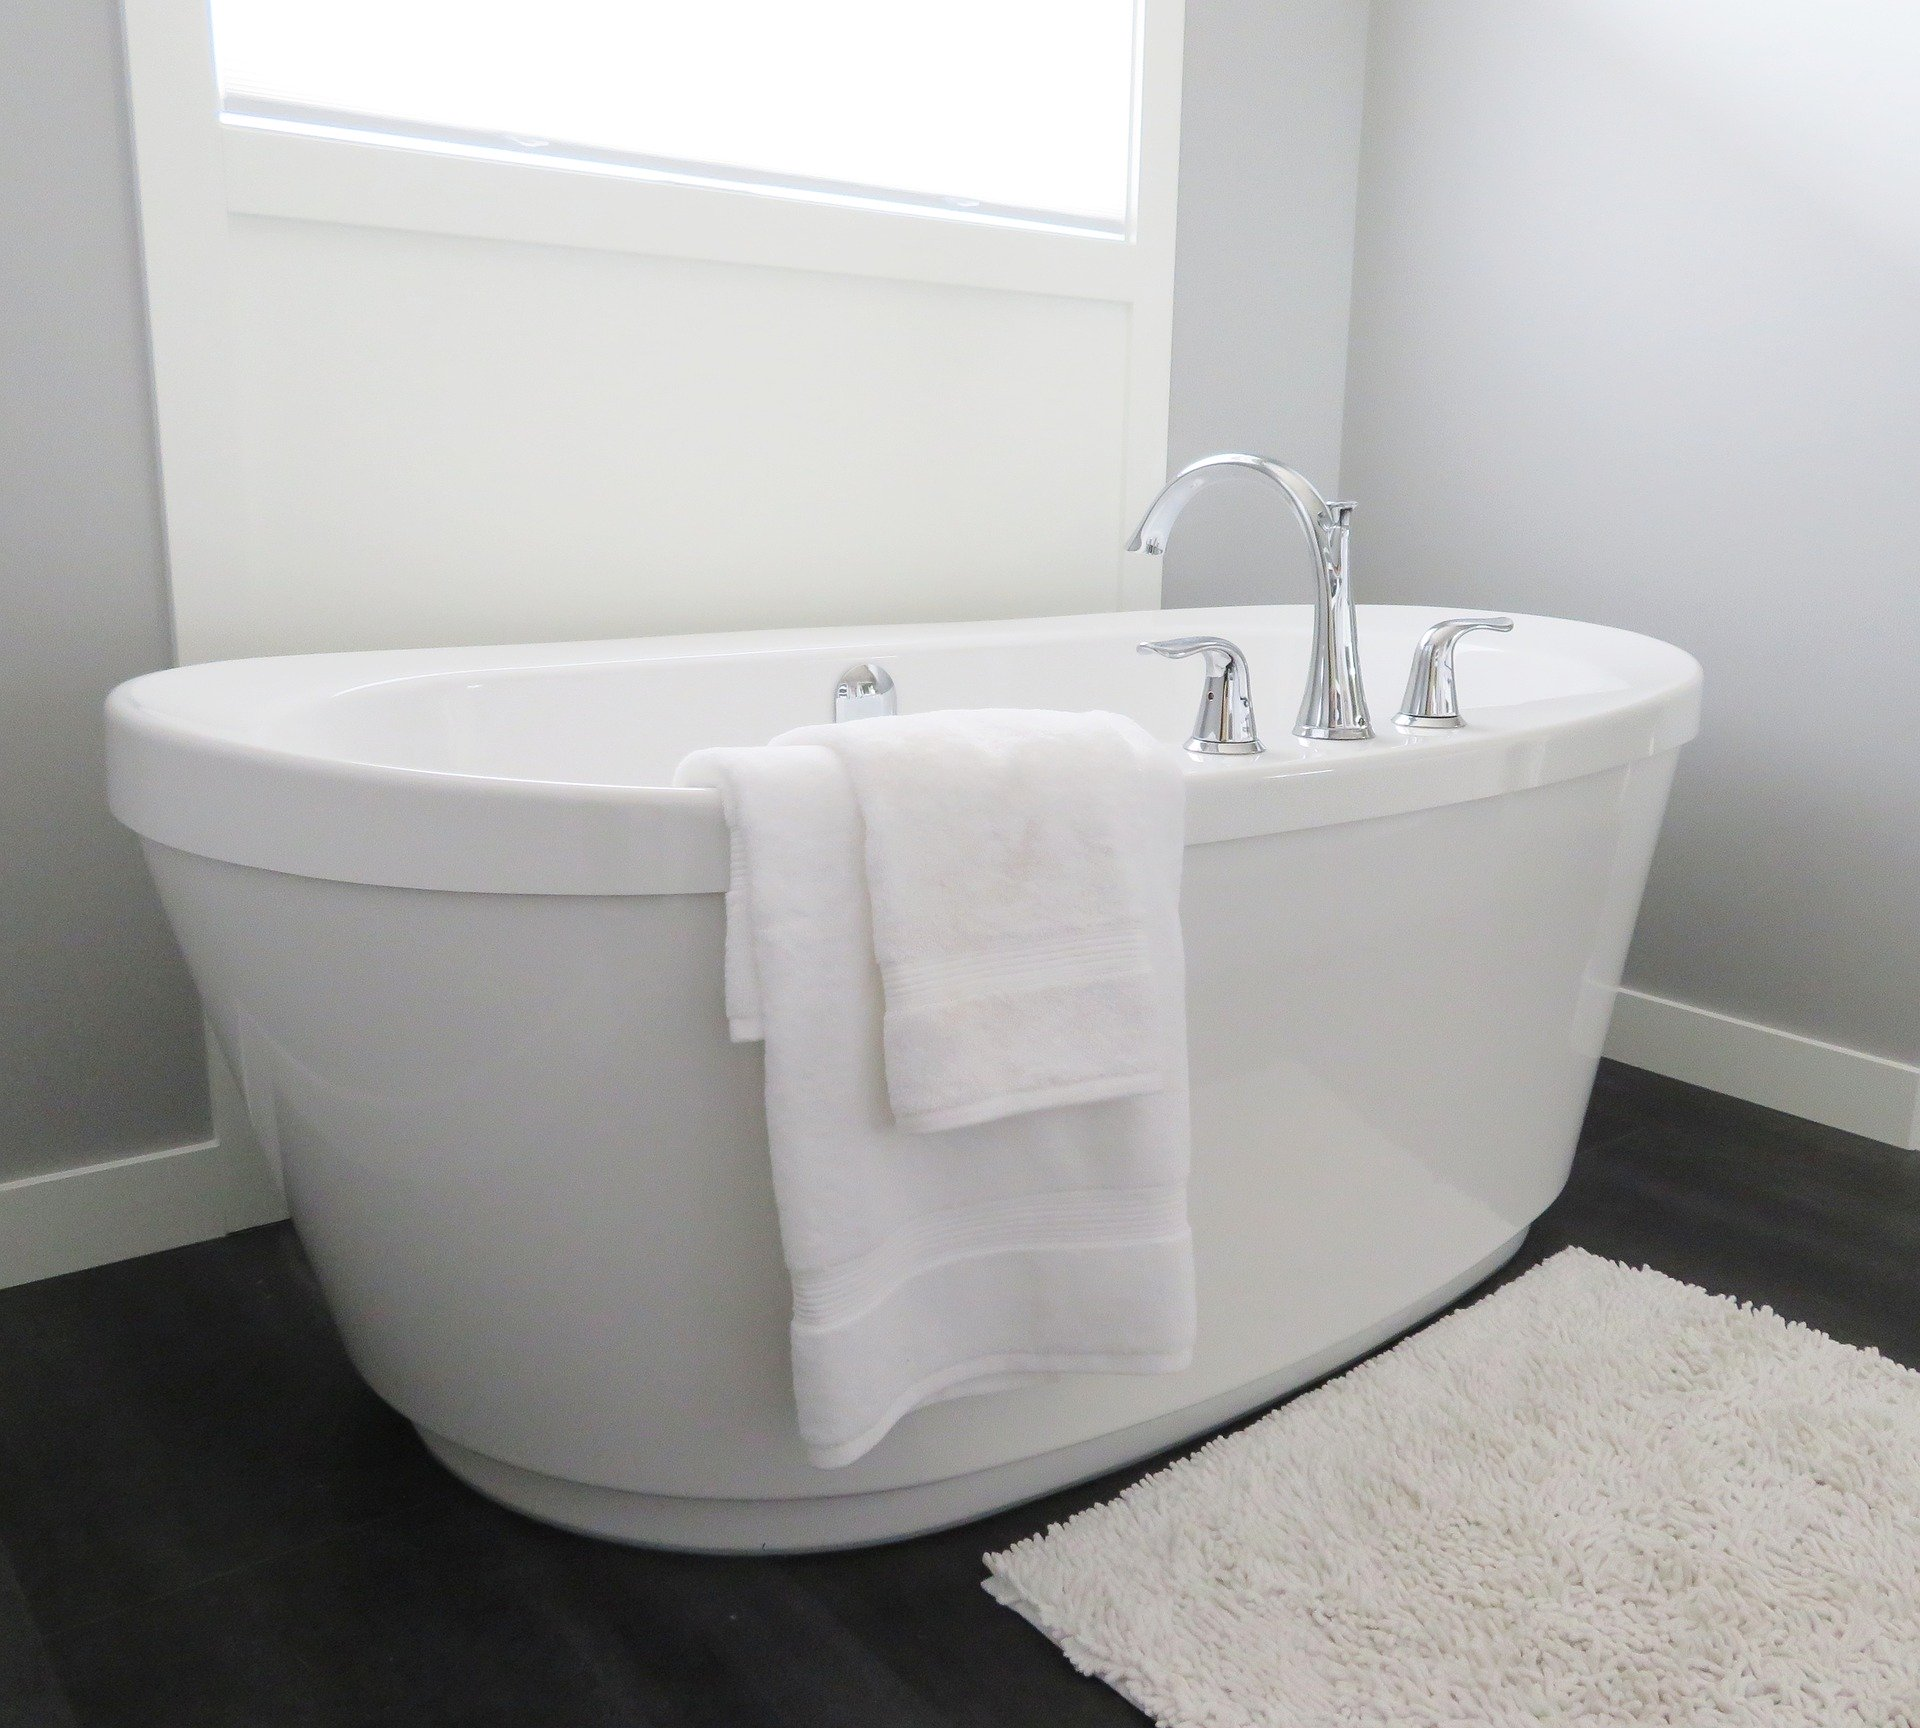 https://pixabay.com/photos/bathtub-tub-bathroom-bath-white-2485957/